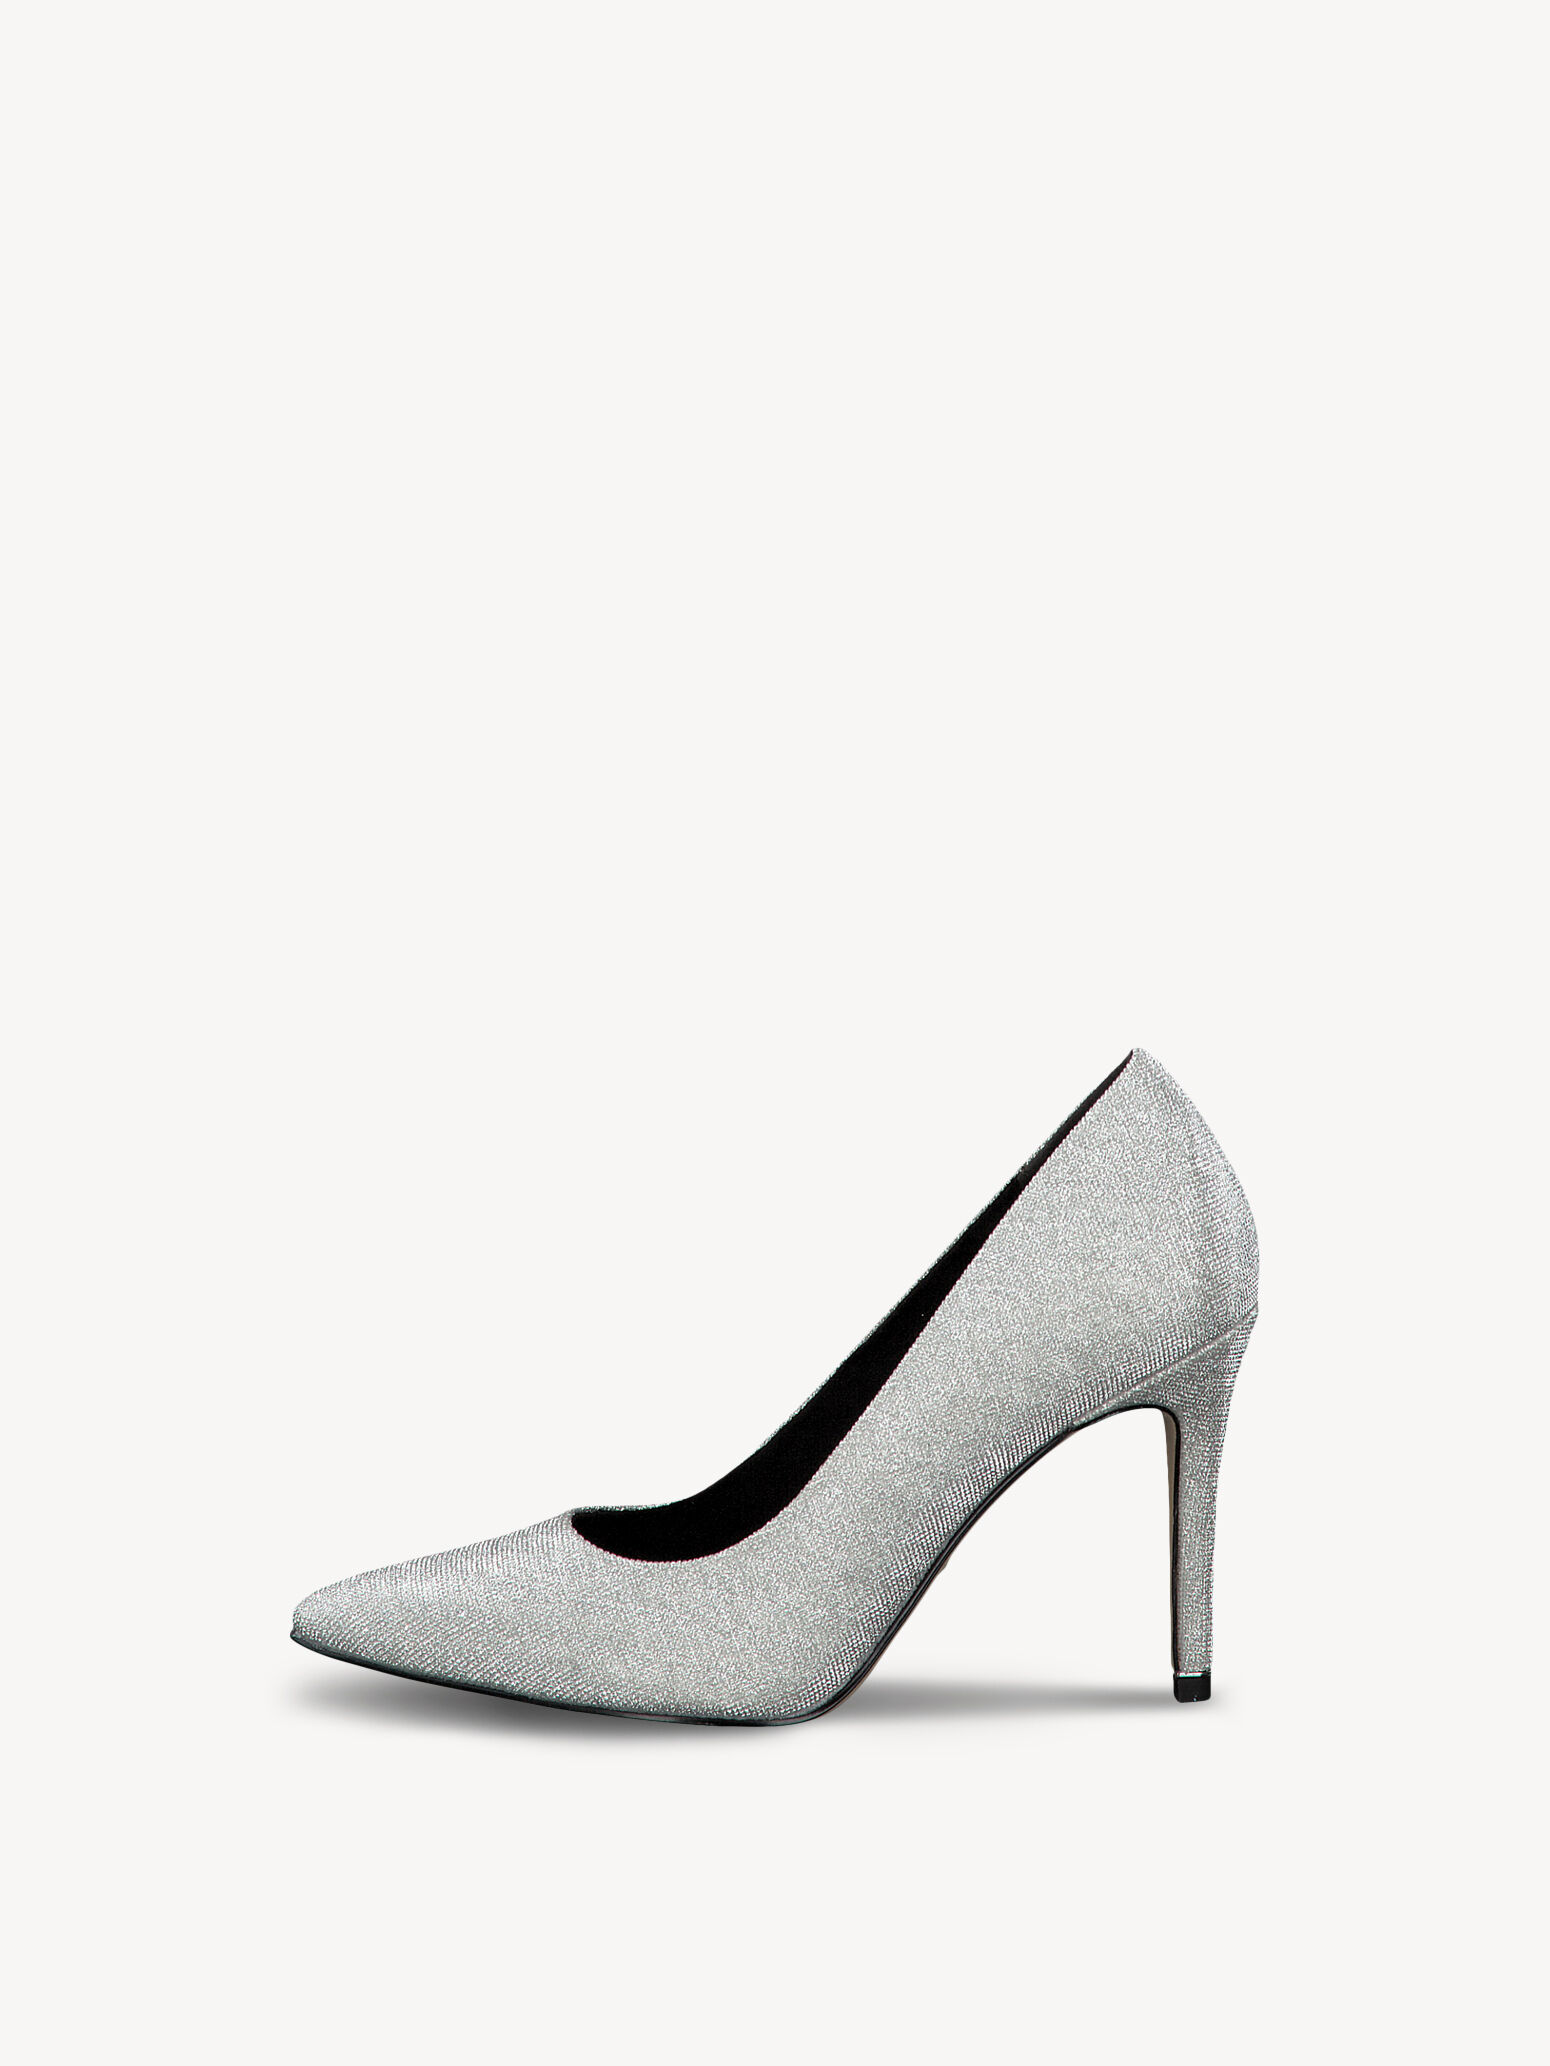 tamaris black matte pumps, Tamaris plateau pumps i flot sort